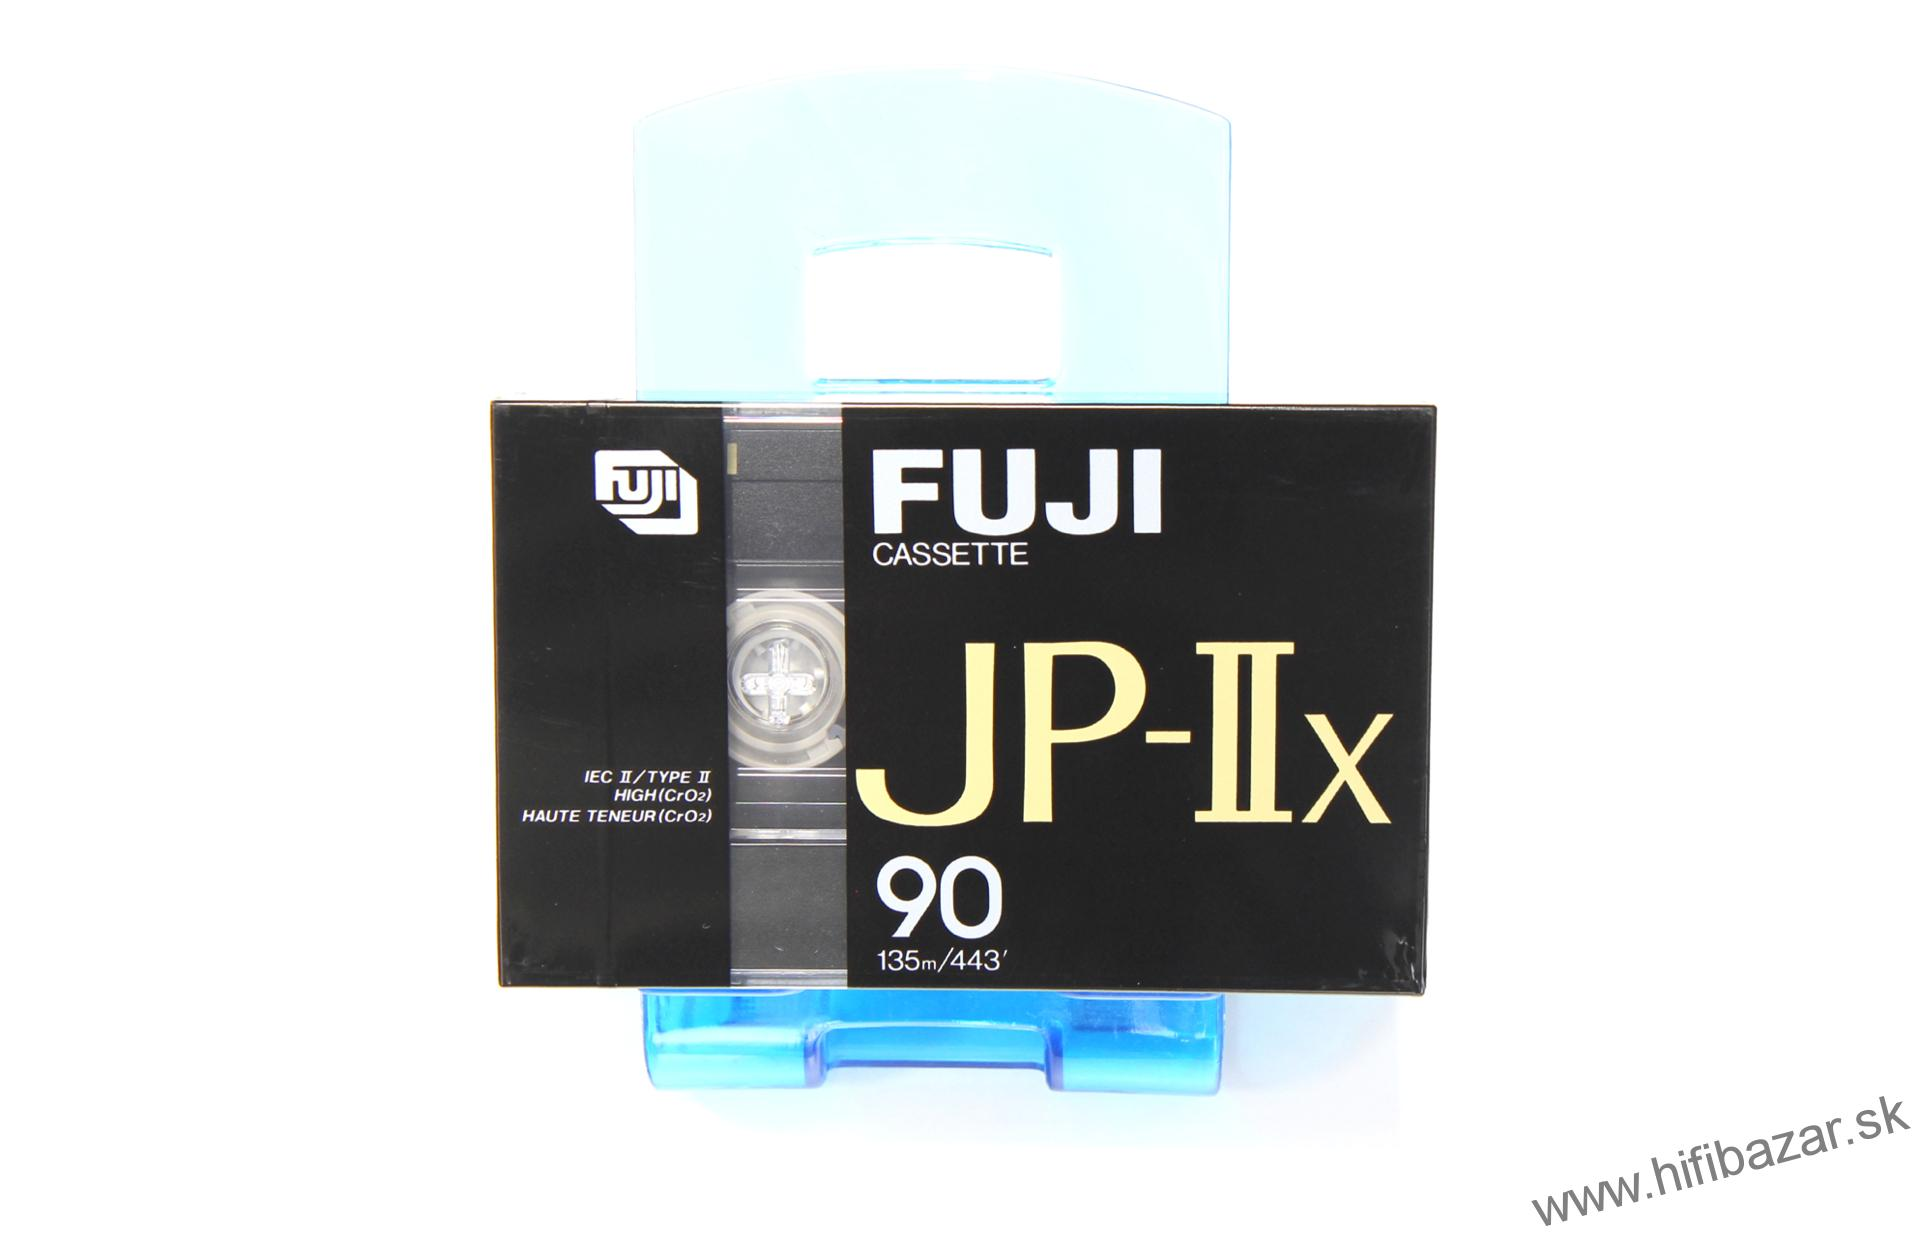 FUJI JP-IIx 90 Position Chrome